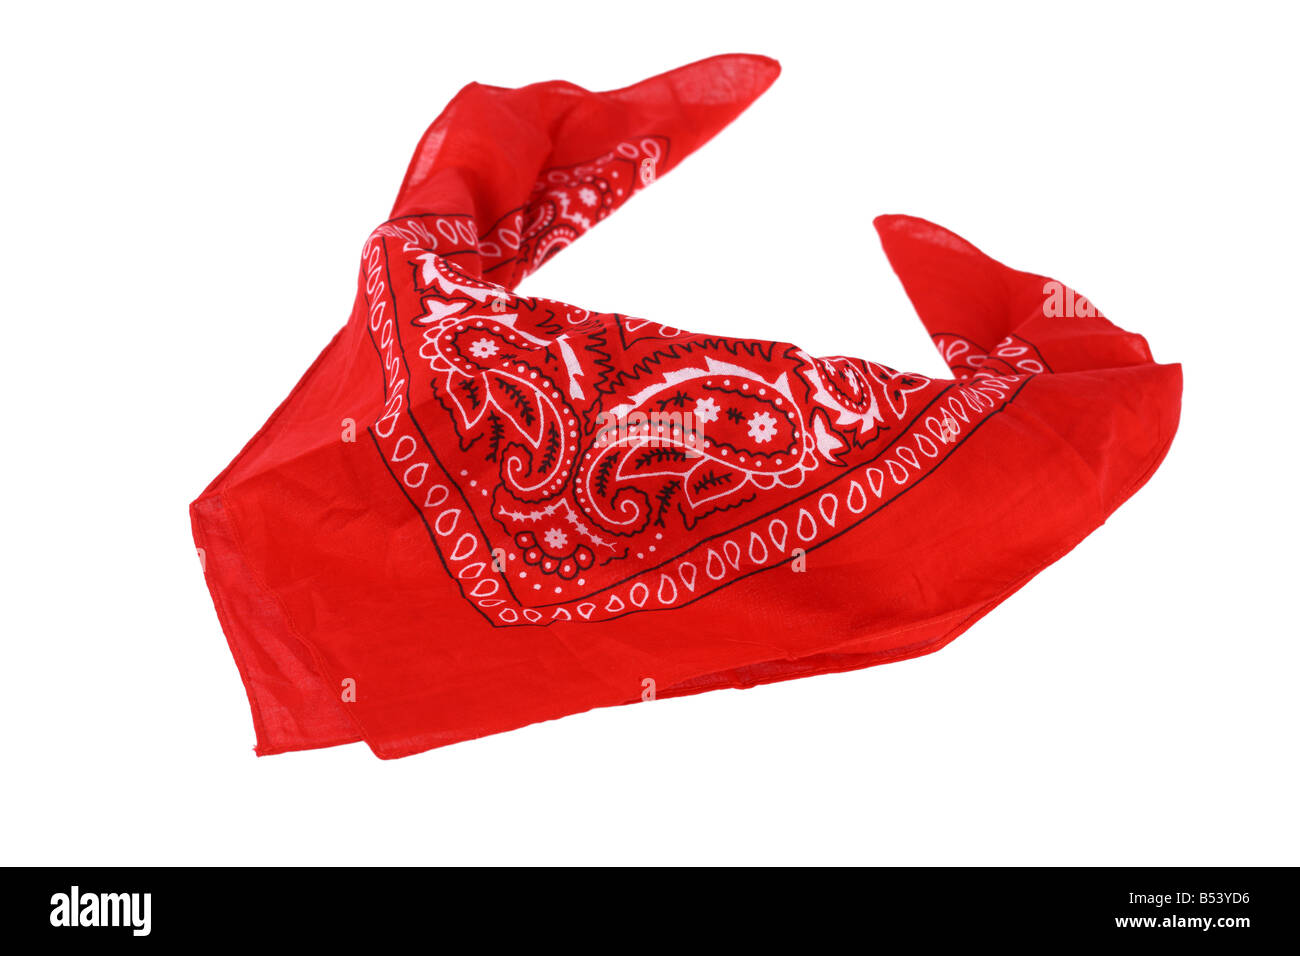 Red handkerchief cutout isolated on white background - Stock Image